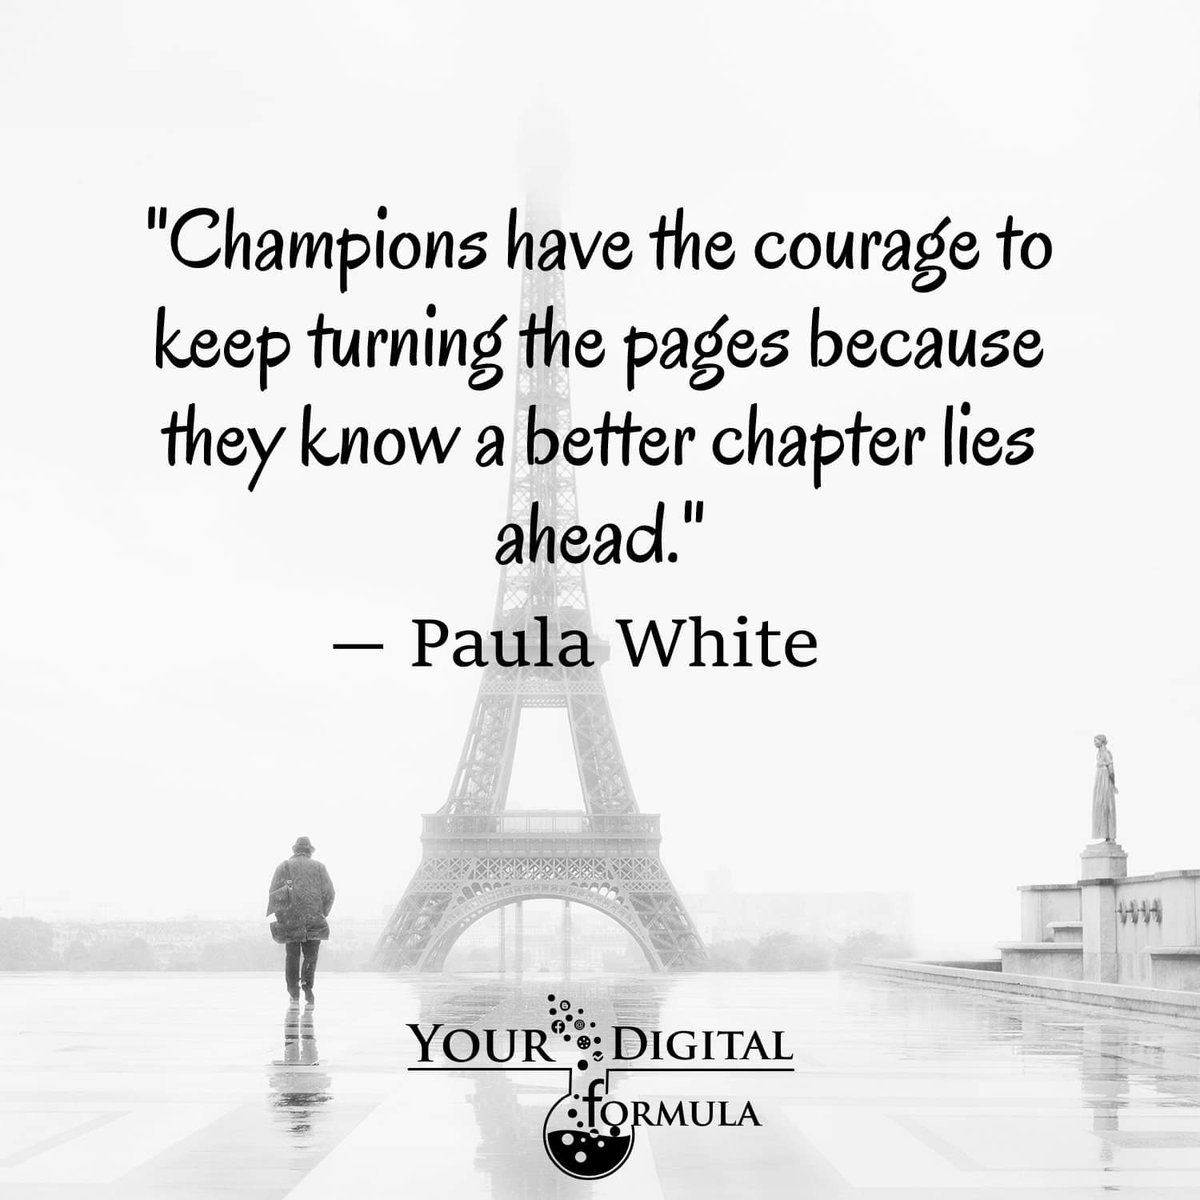 """Champions have the courage to keep turning the pages because they know a better chapter lies ahead."" ~Paula White #InspireThemRetweetTuesday  #SuccessTRAIN #IQRTG #spdc #JoyTrain<br>http://pic.twitter.com/jGk0GWTbbs"